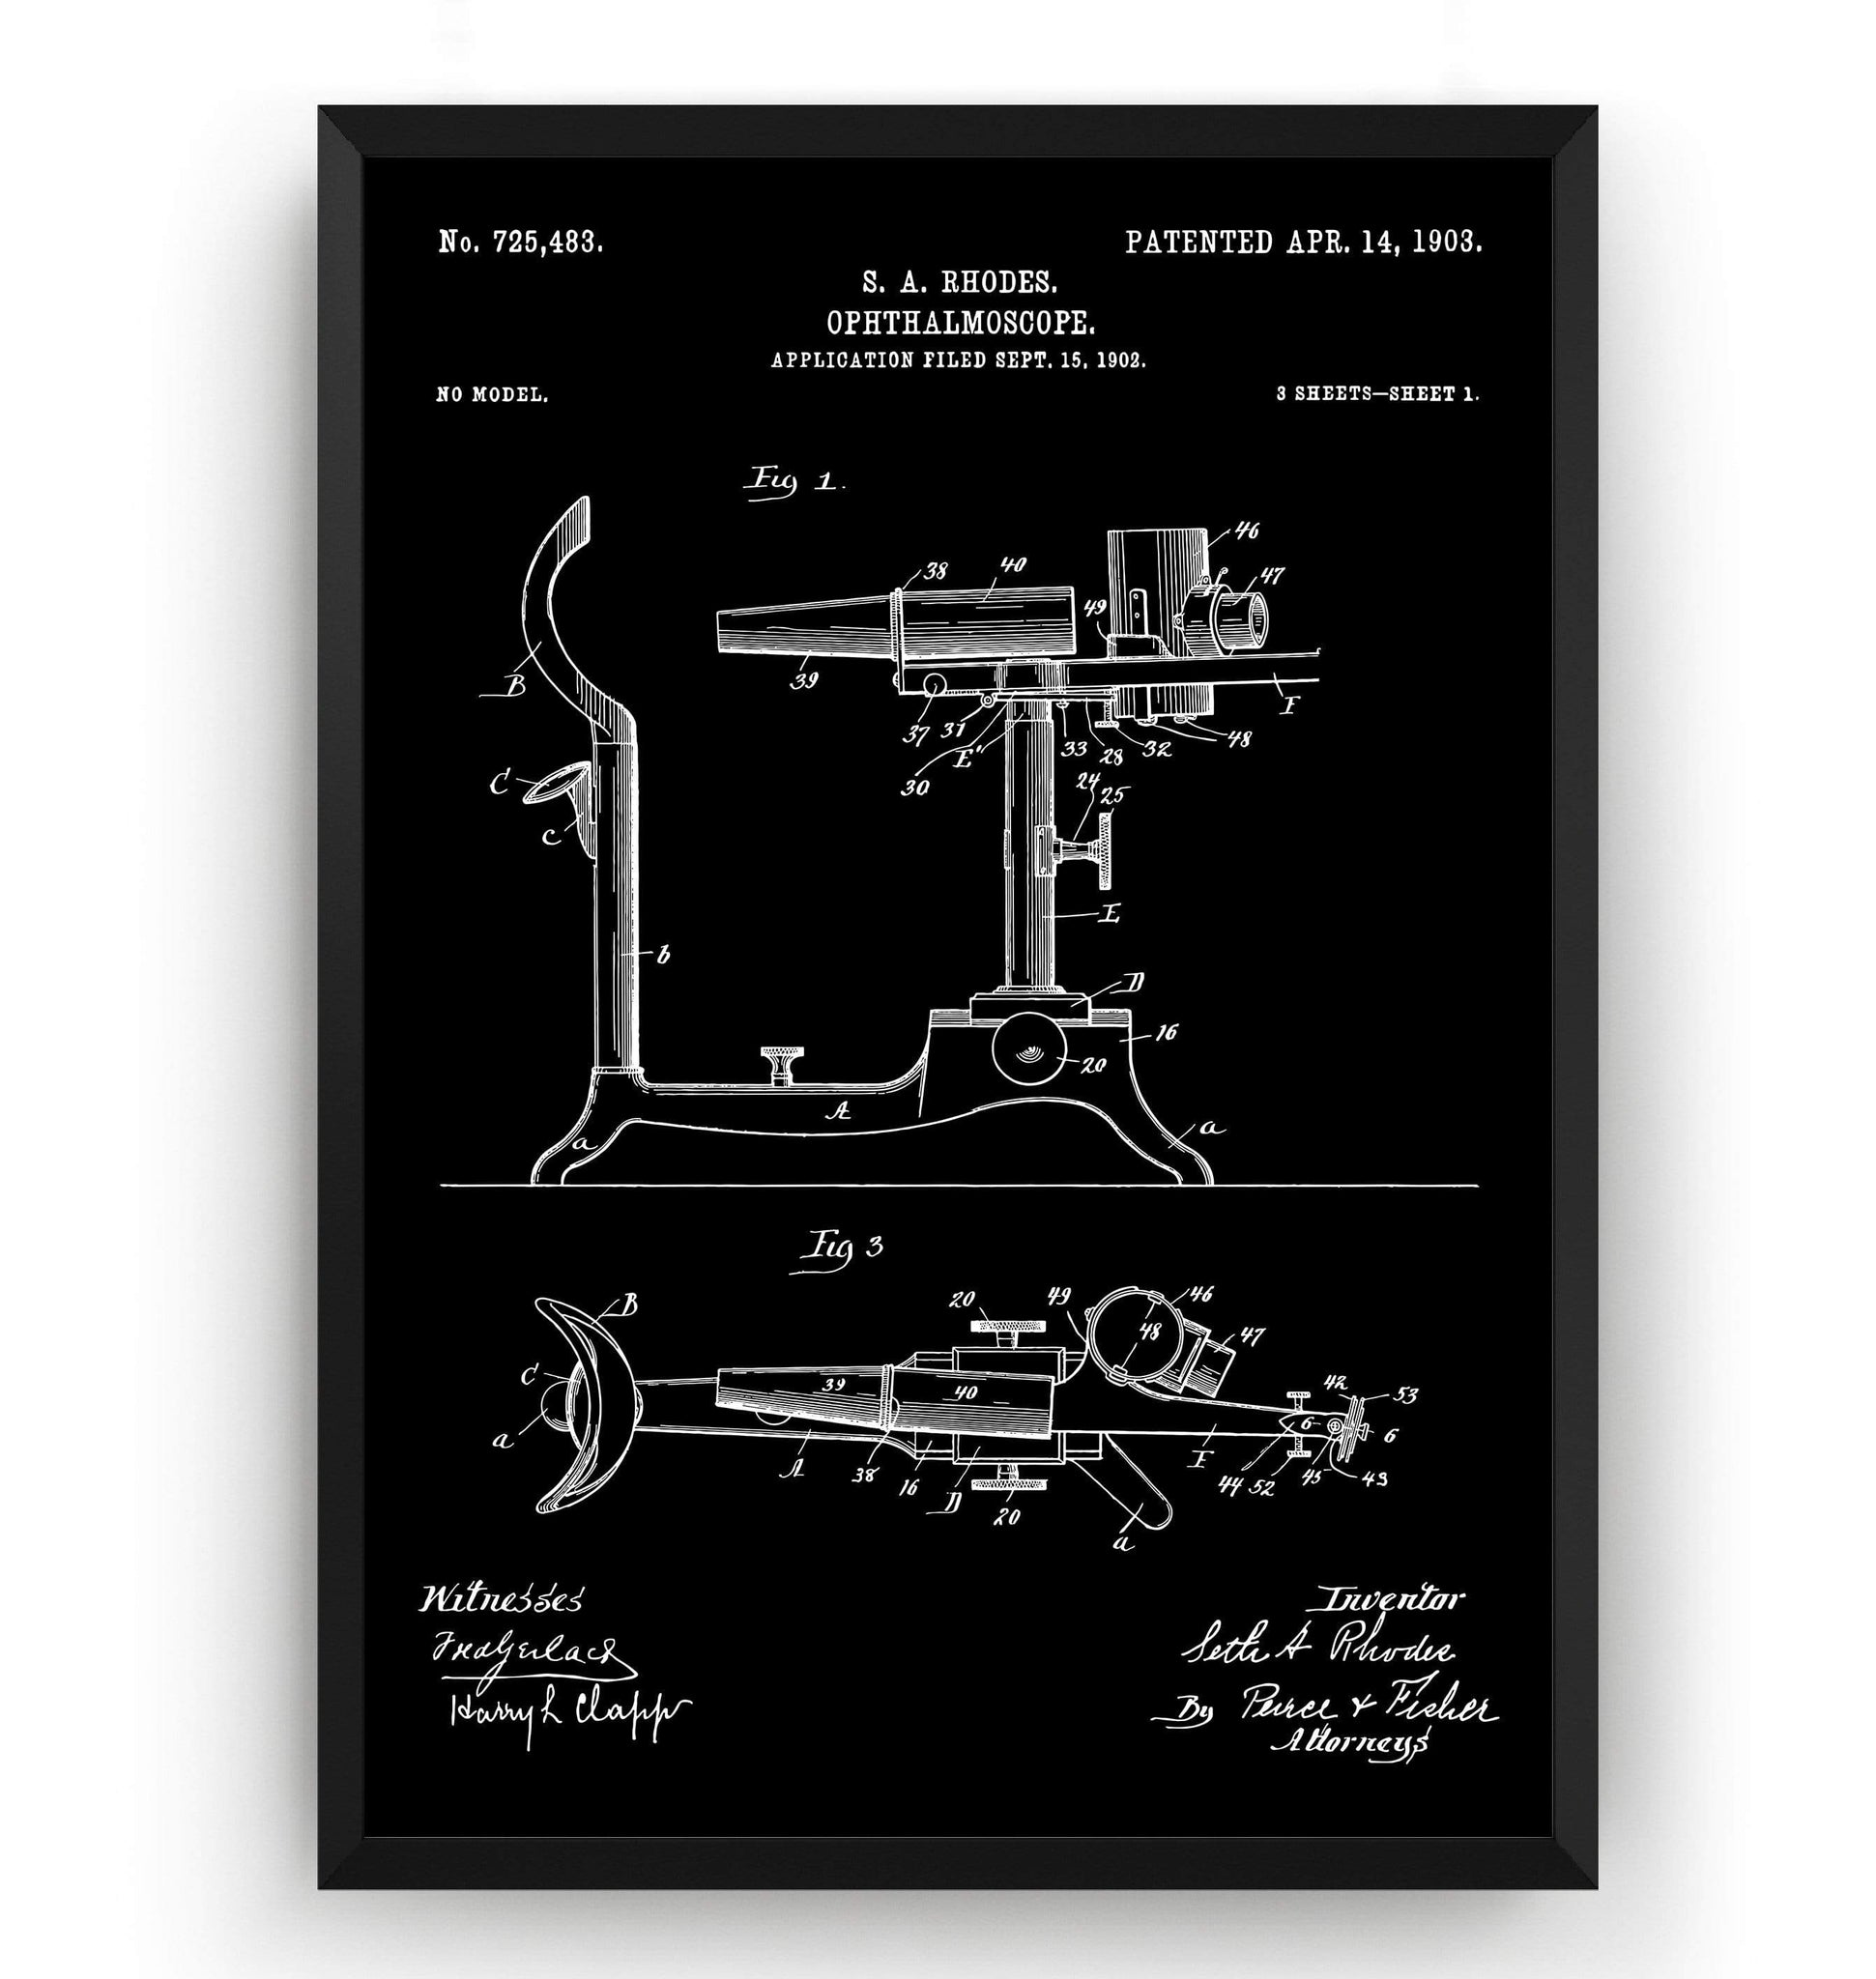 Ophthalmoscope 1903 Patent Print - Magic Posters